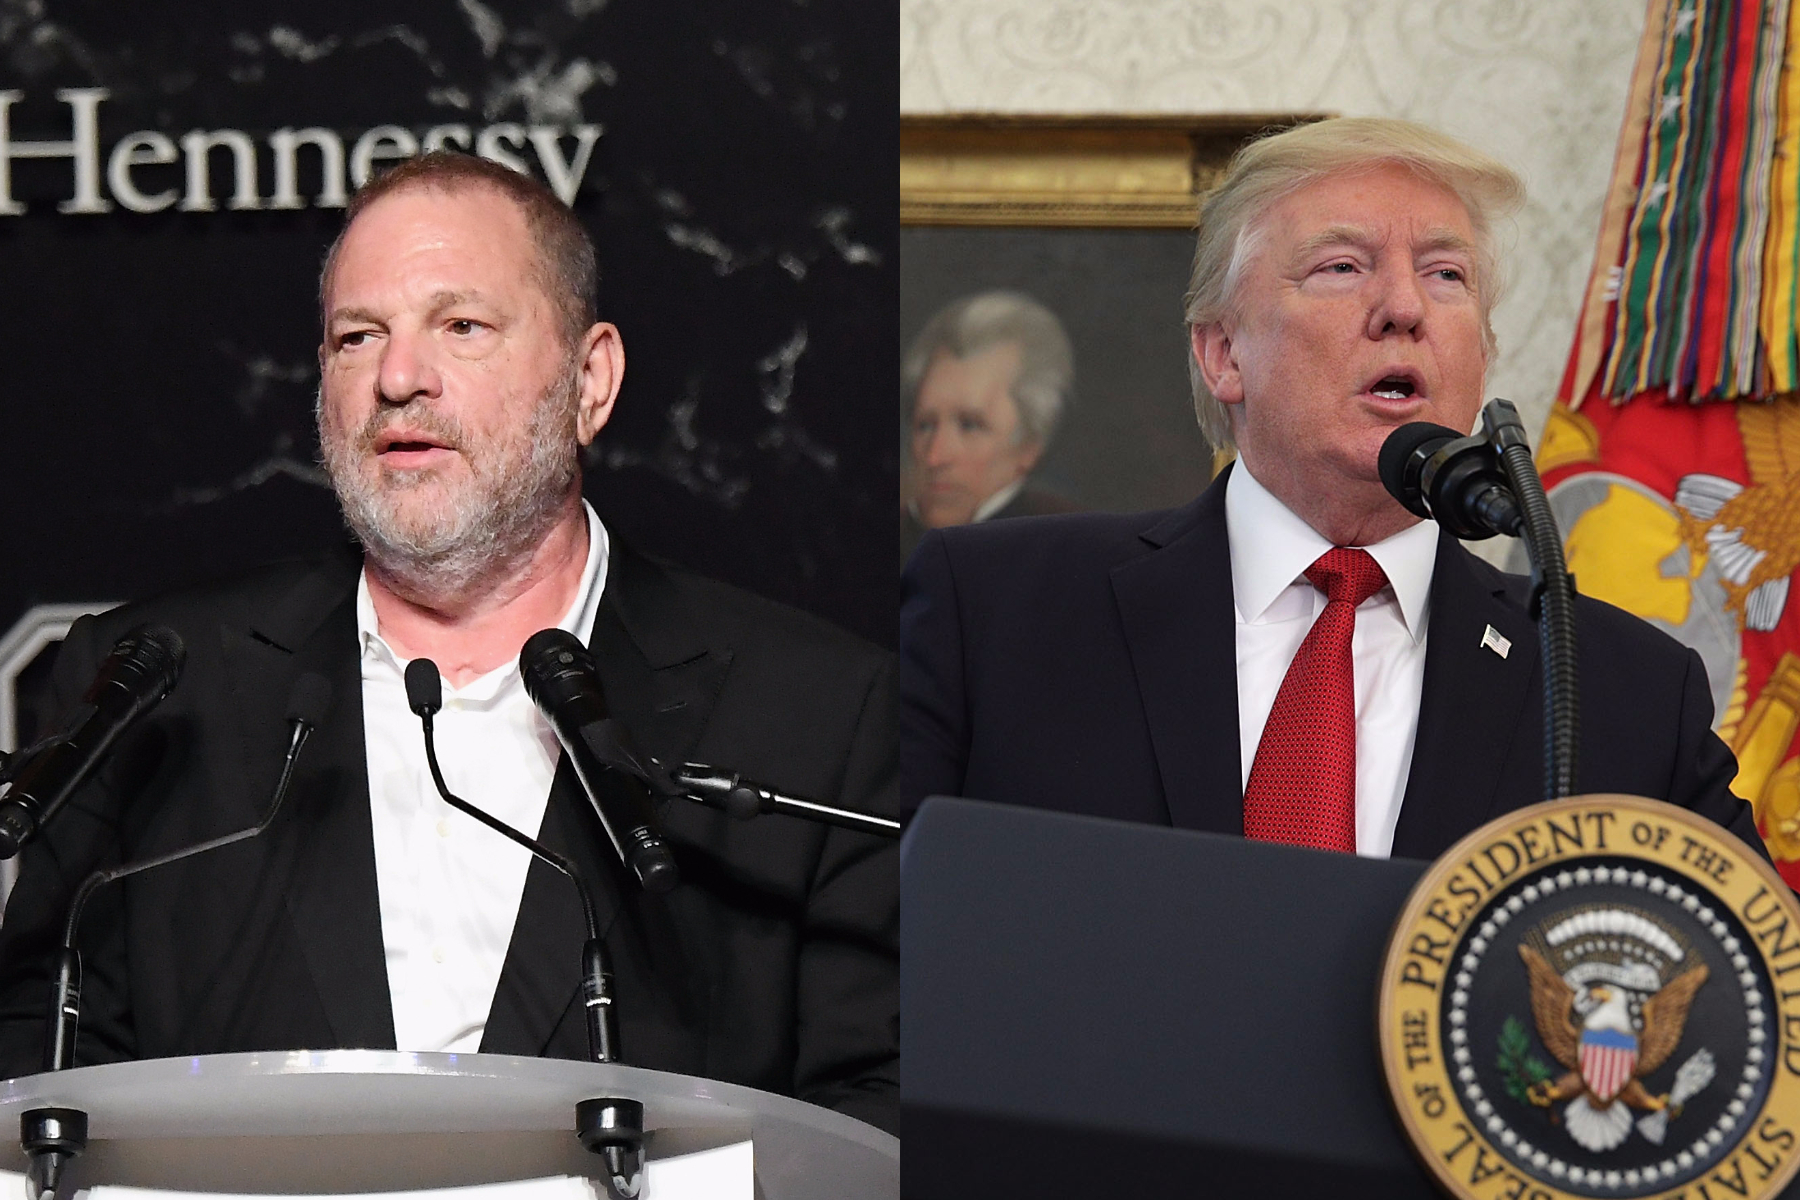 Trump and Weinstein are both on trial. Only one is still considered too powerful to fail.